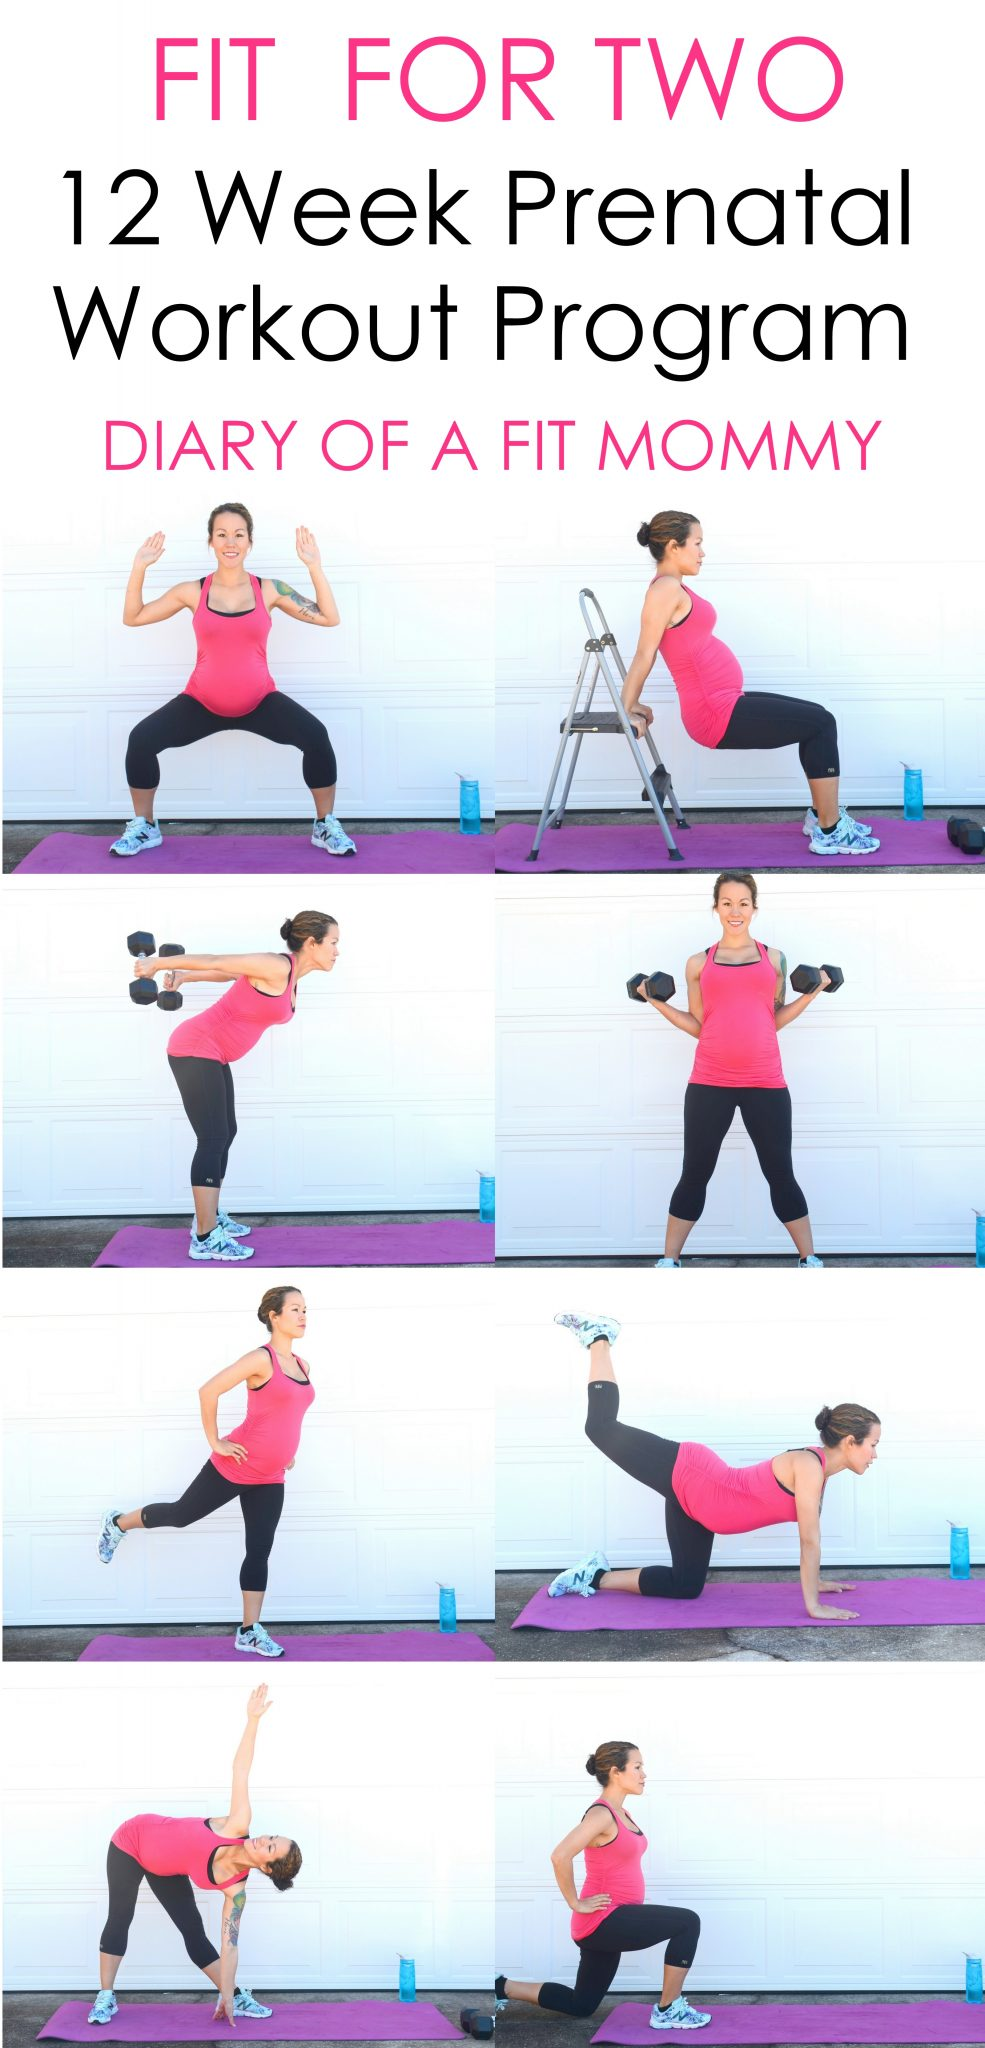 Safe & Effective Abdominal Exercises For Every Trimester ...